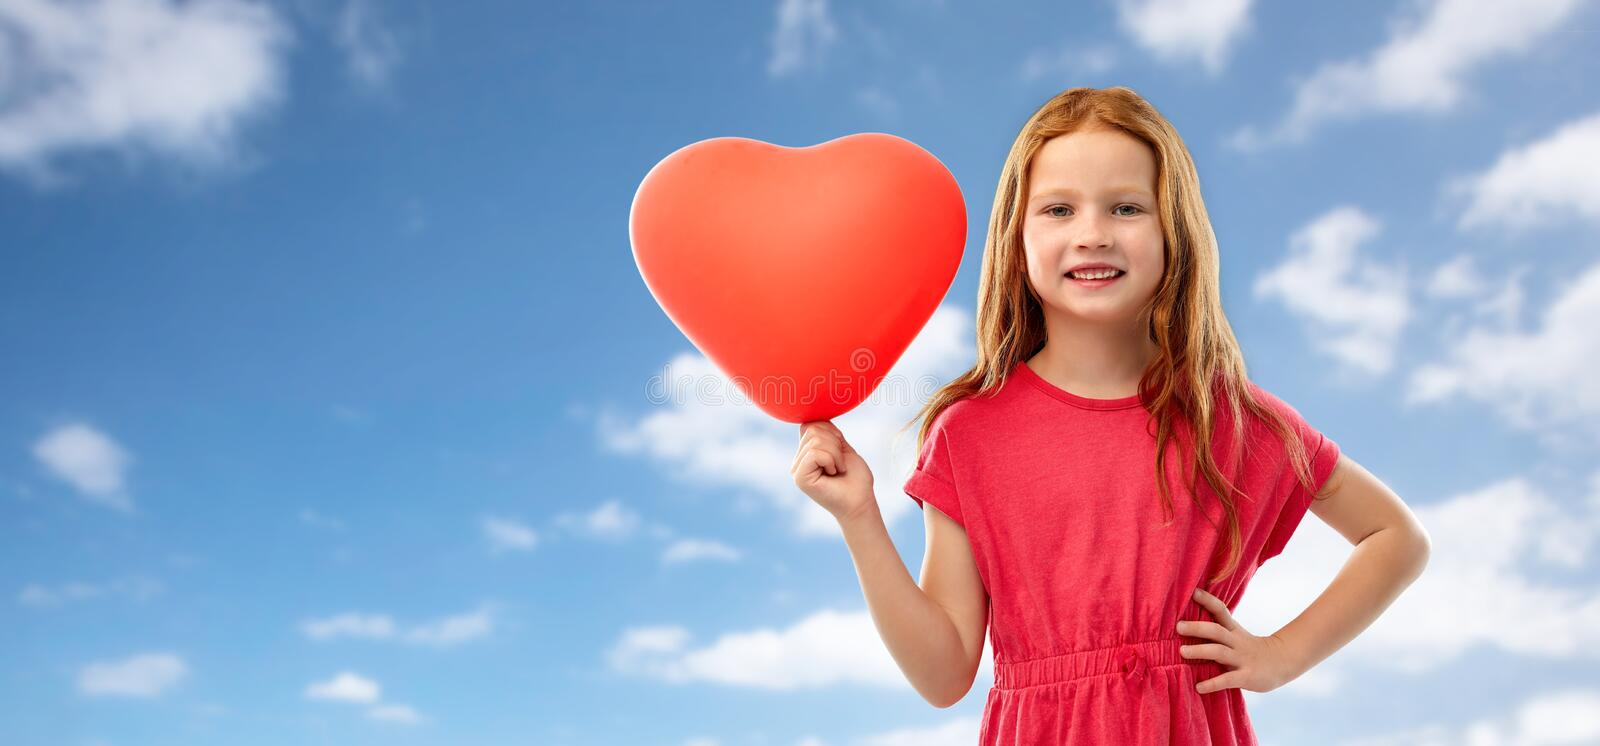 Happy red girl with heart shaped balloon over sky stock images